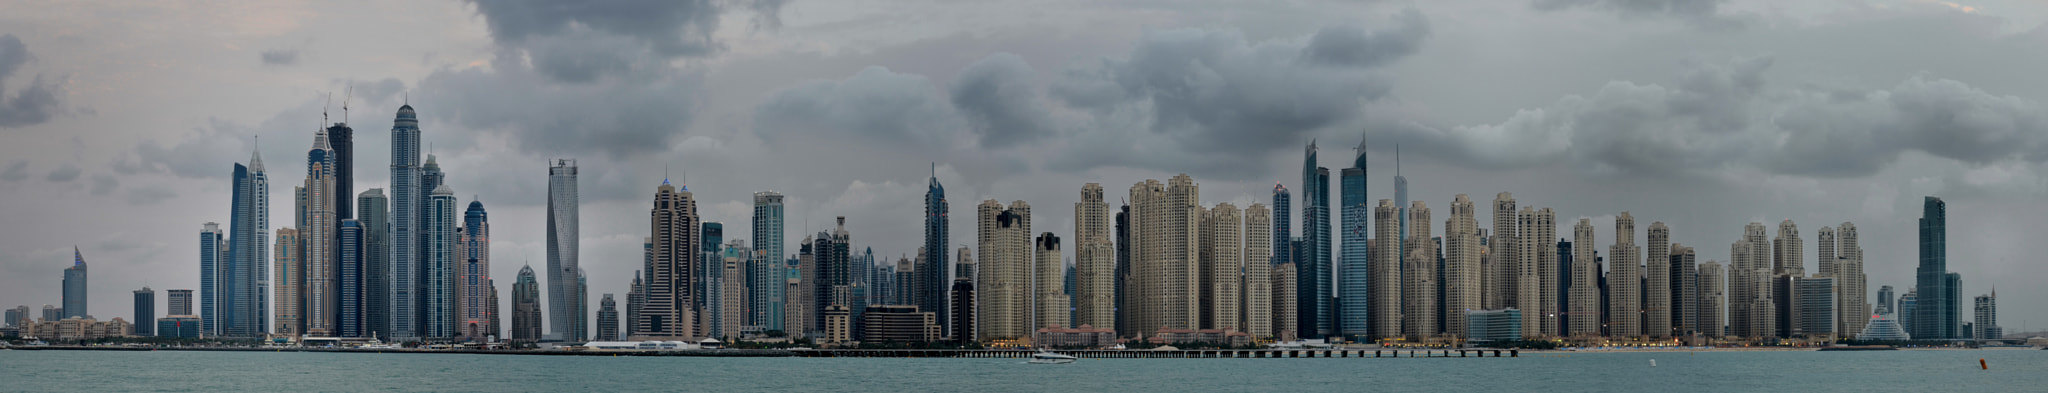 Photograph Clouds over Dubai by MOhab Karram on 500px